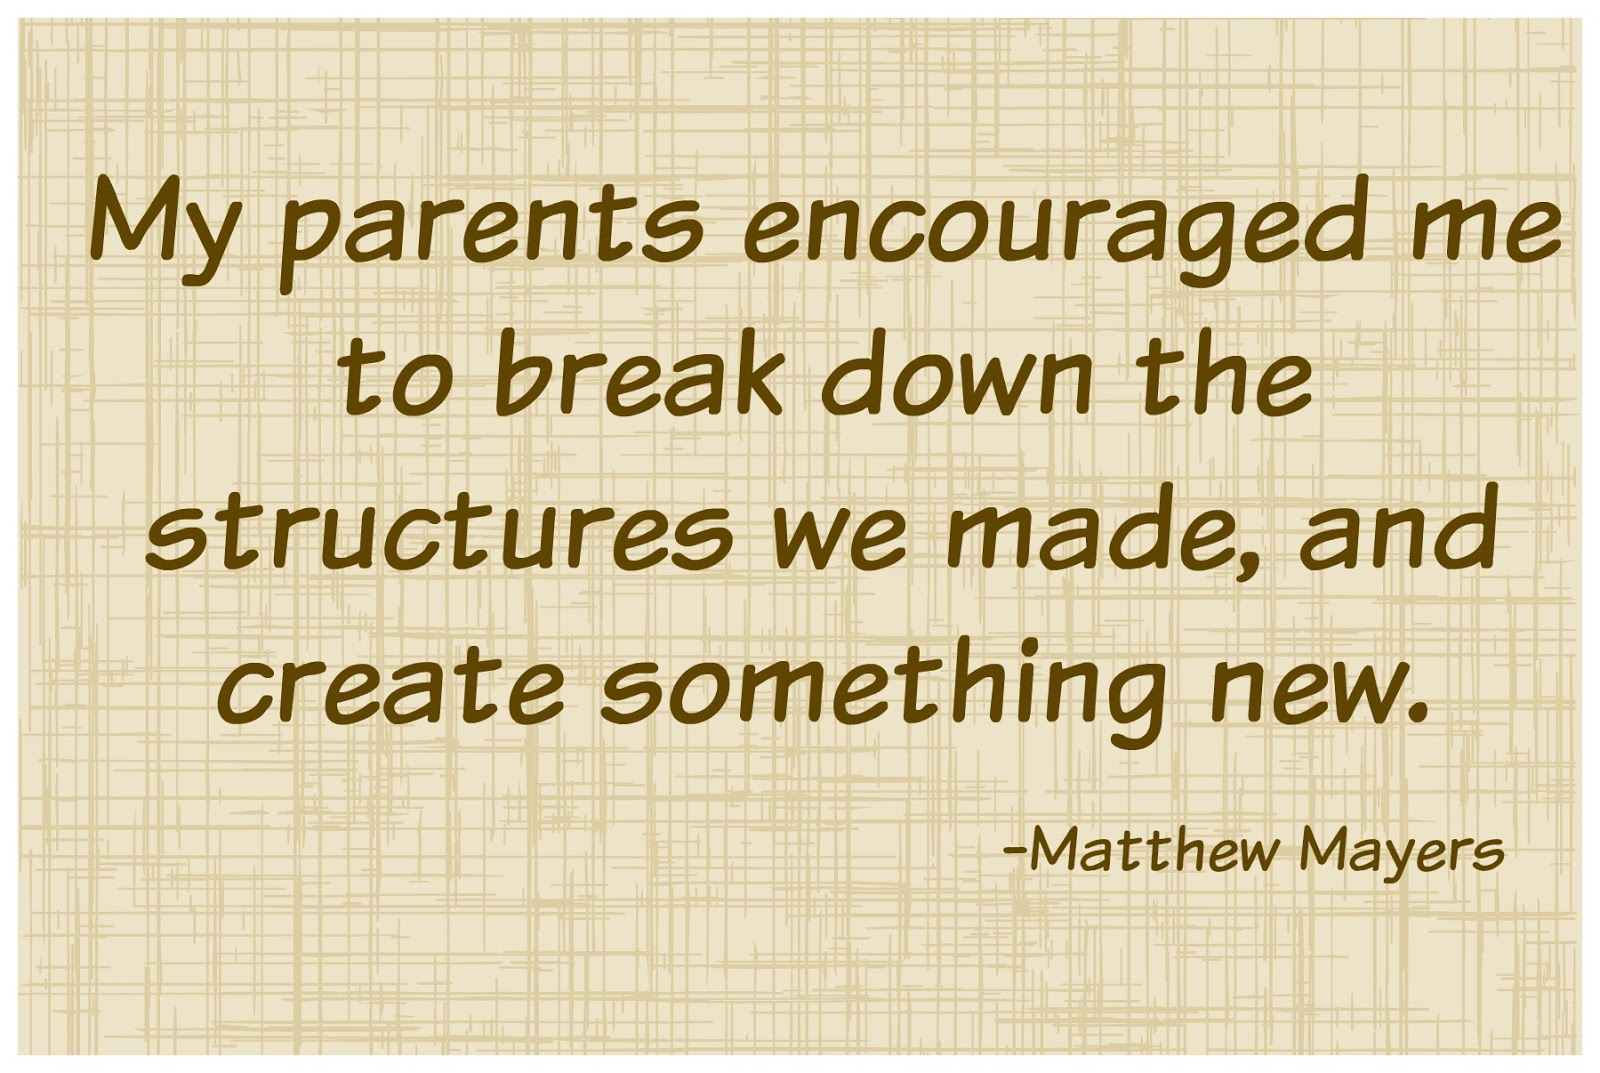 Quotes About Parents Love And Support A sweet quote about parental